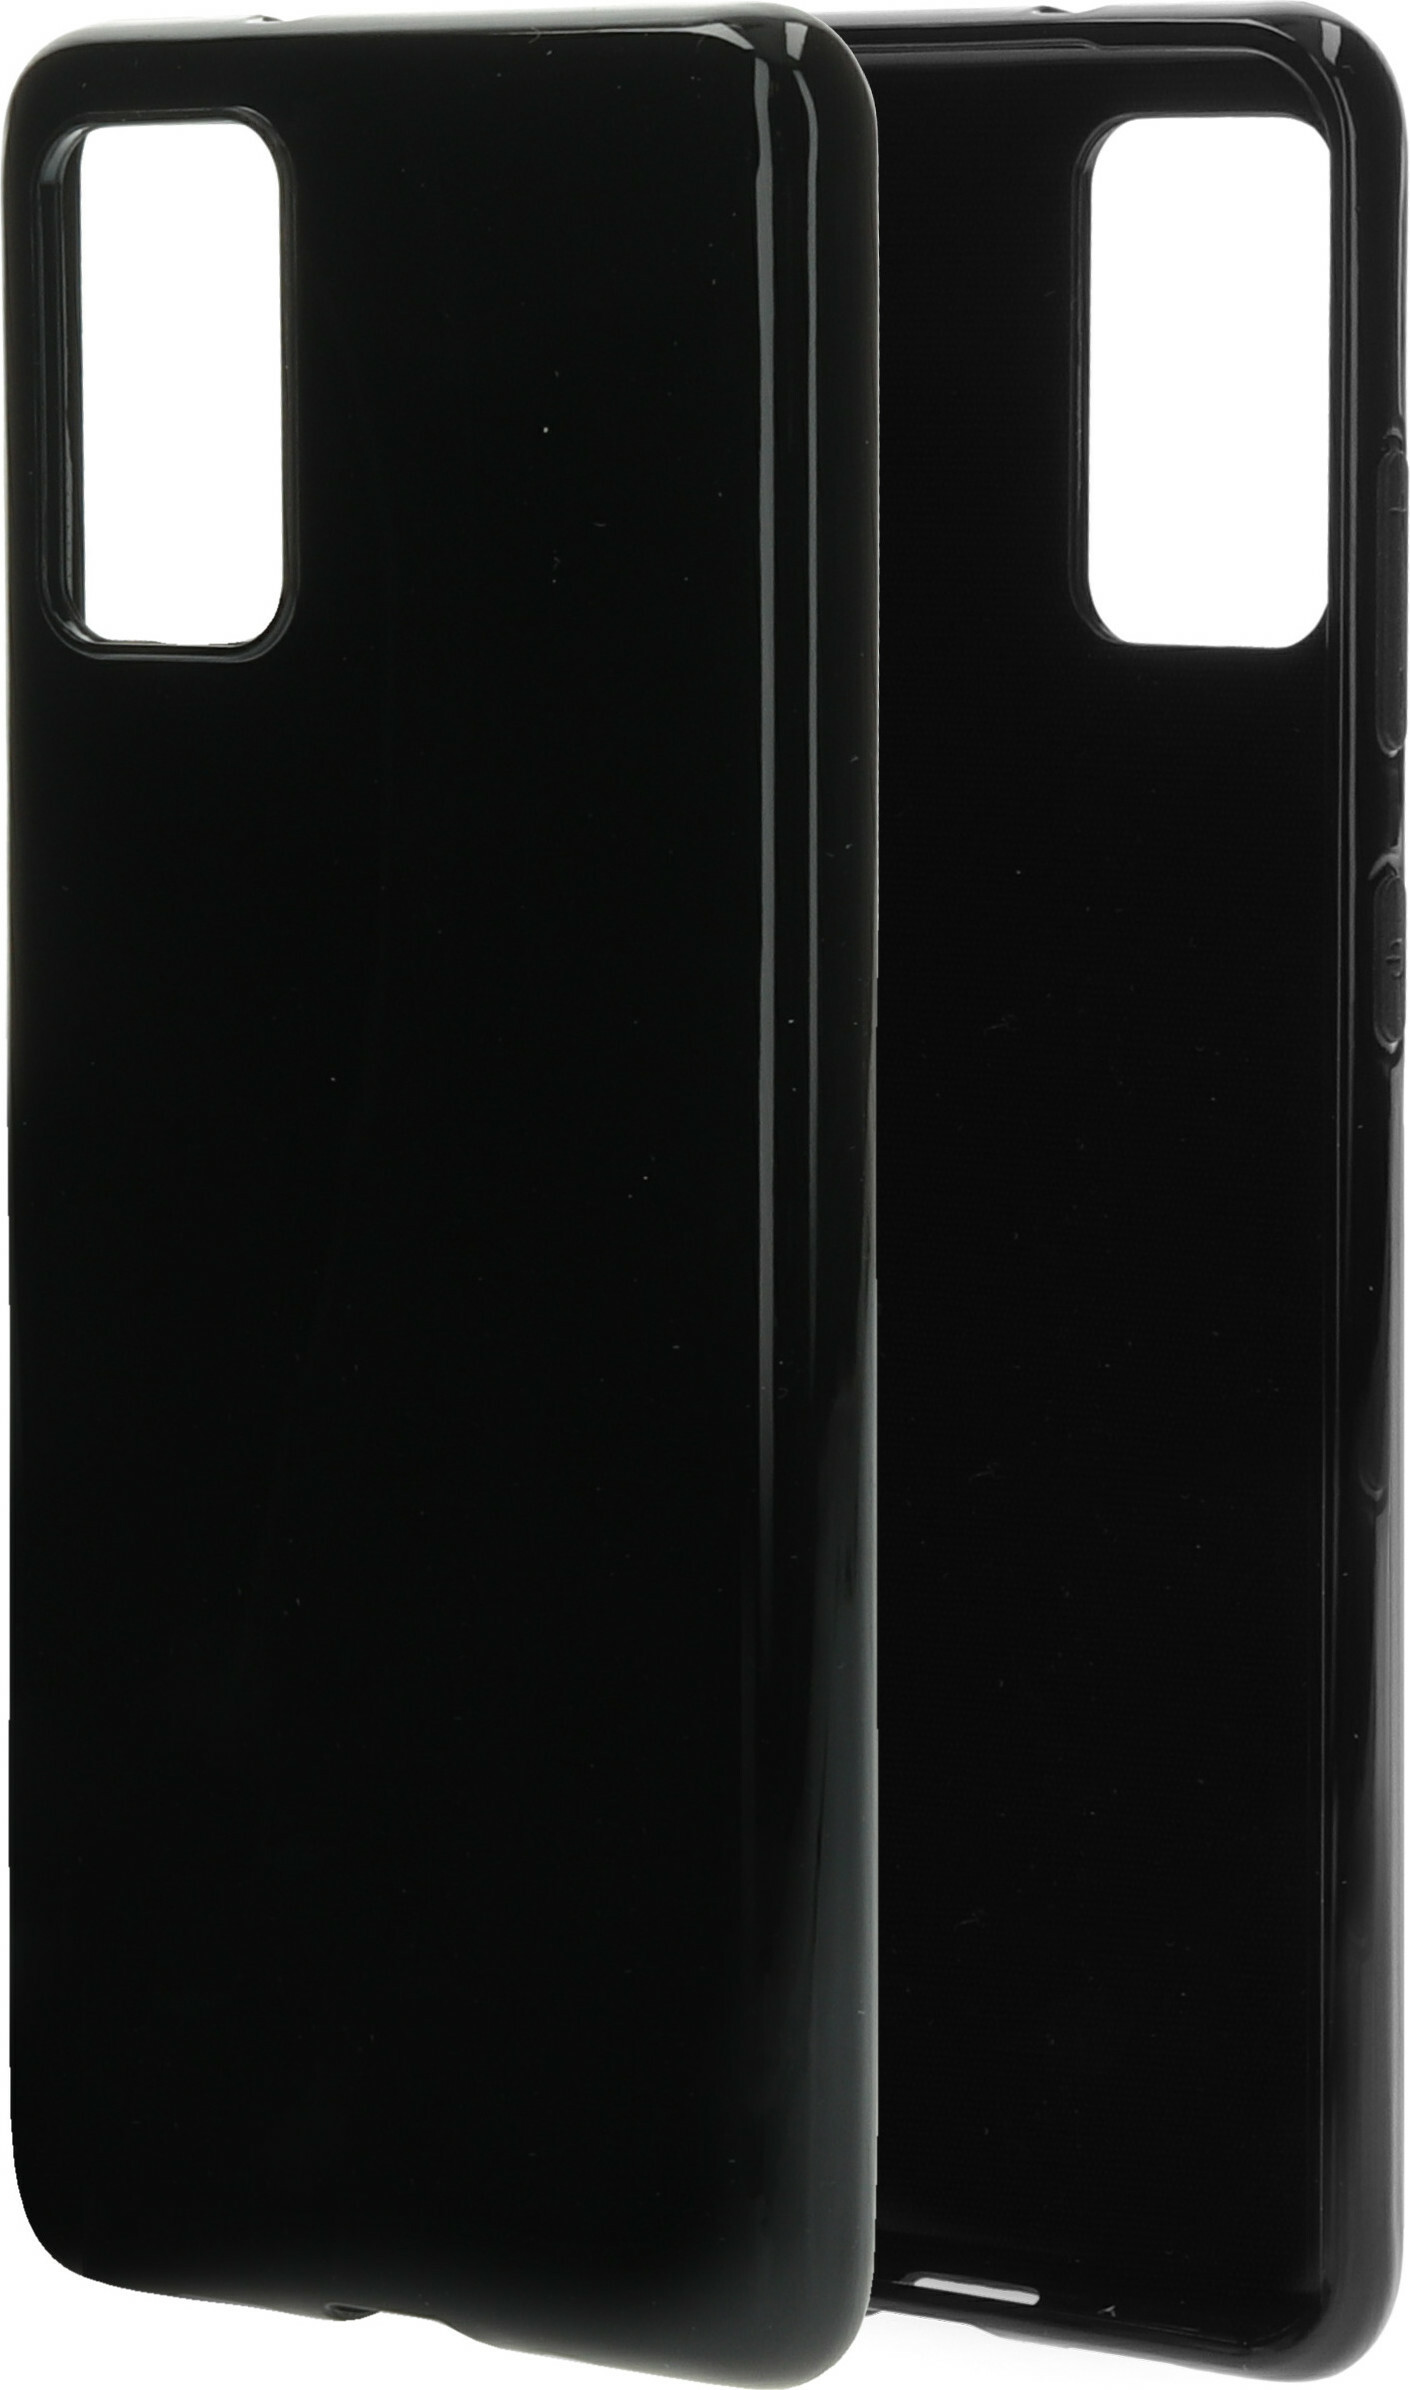 Mobiparts Classic TPU Case Samsung Galaxy S20 Plus Black